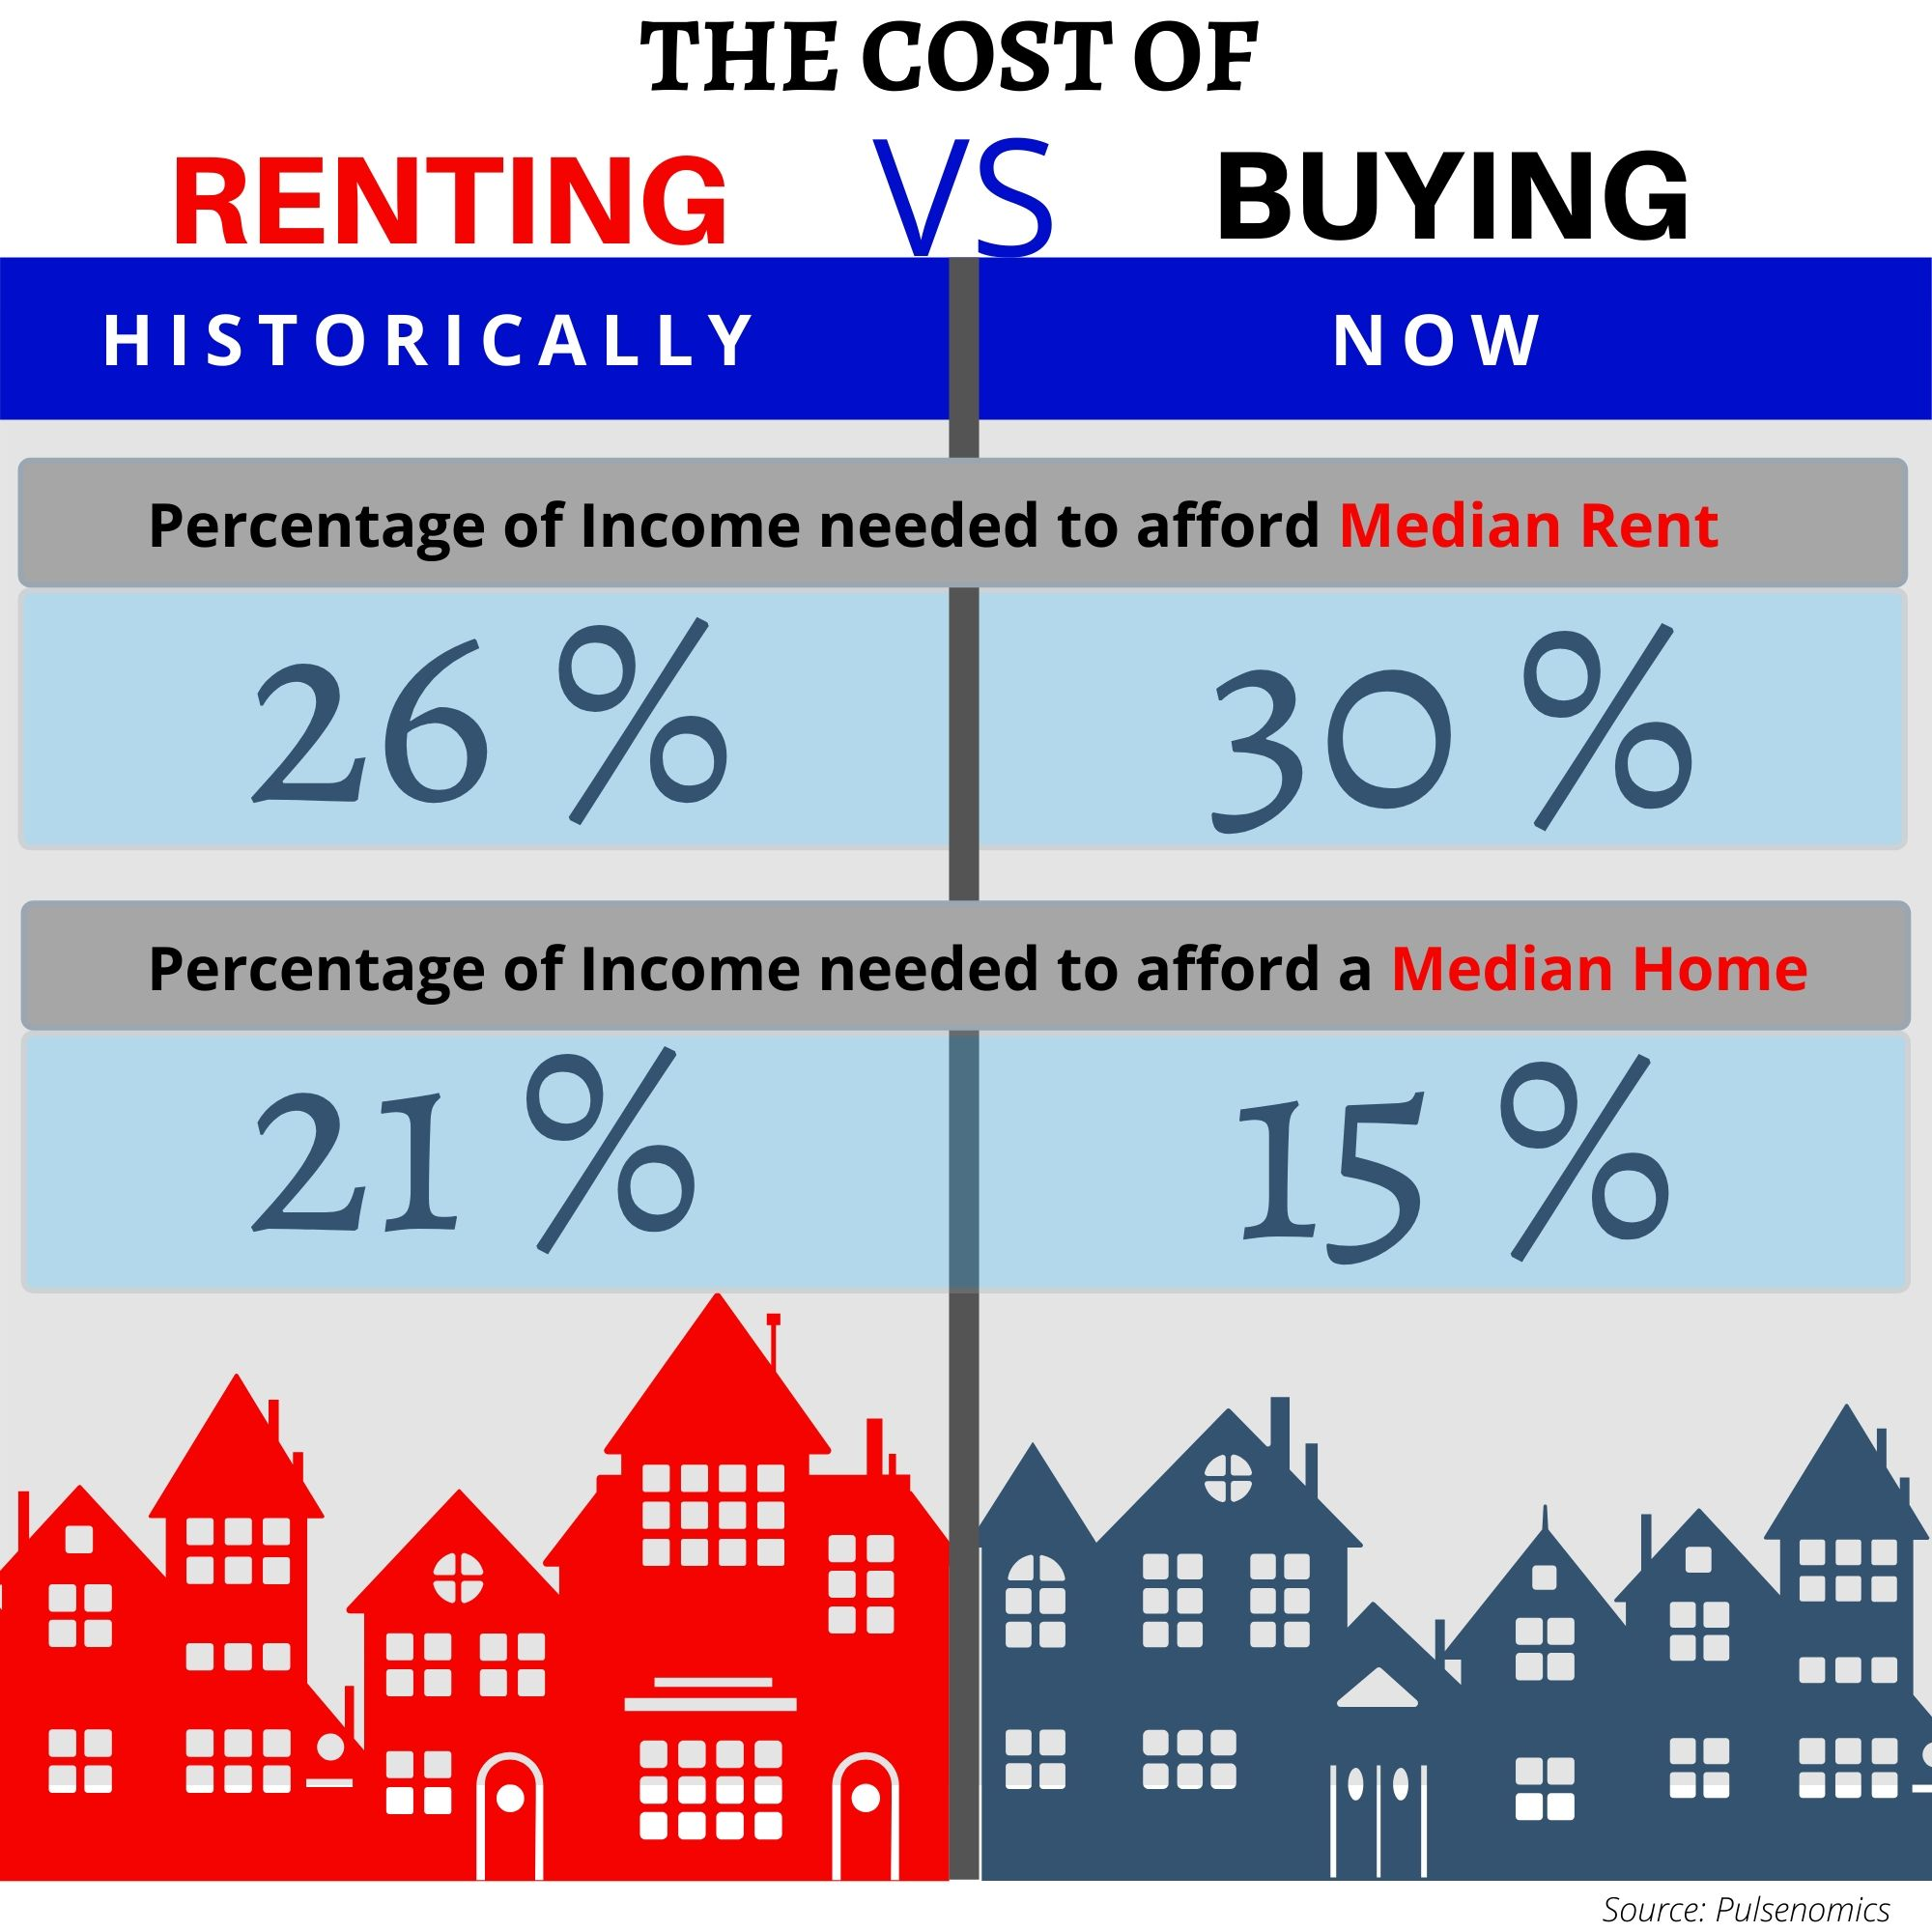 THE COST OF Renting vs Buying.jpg